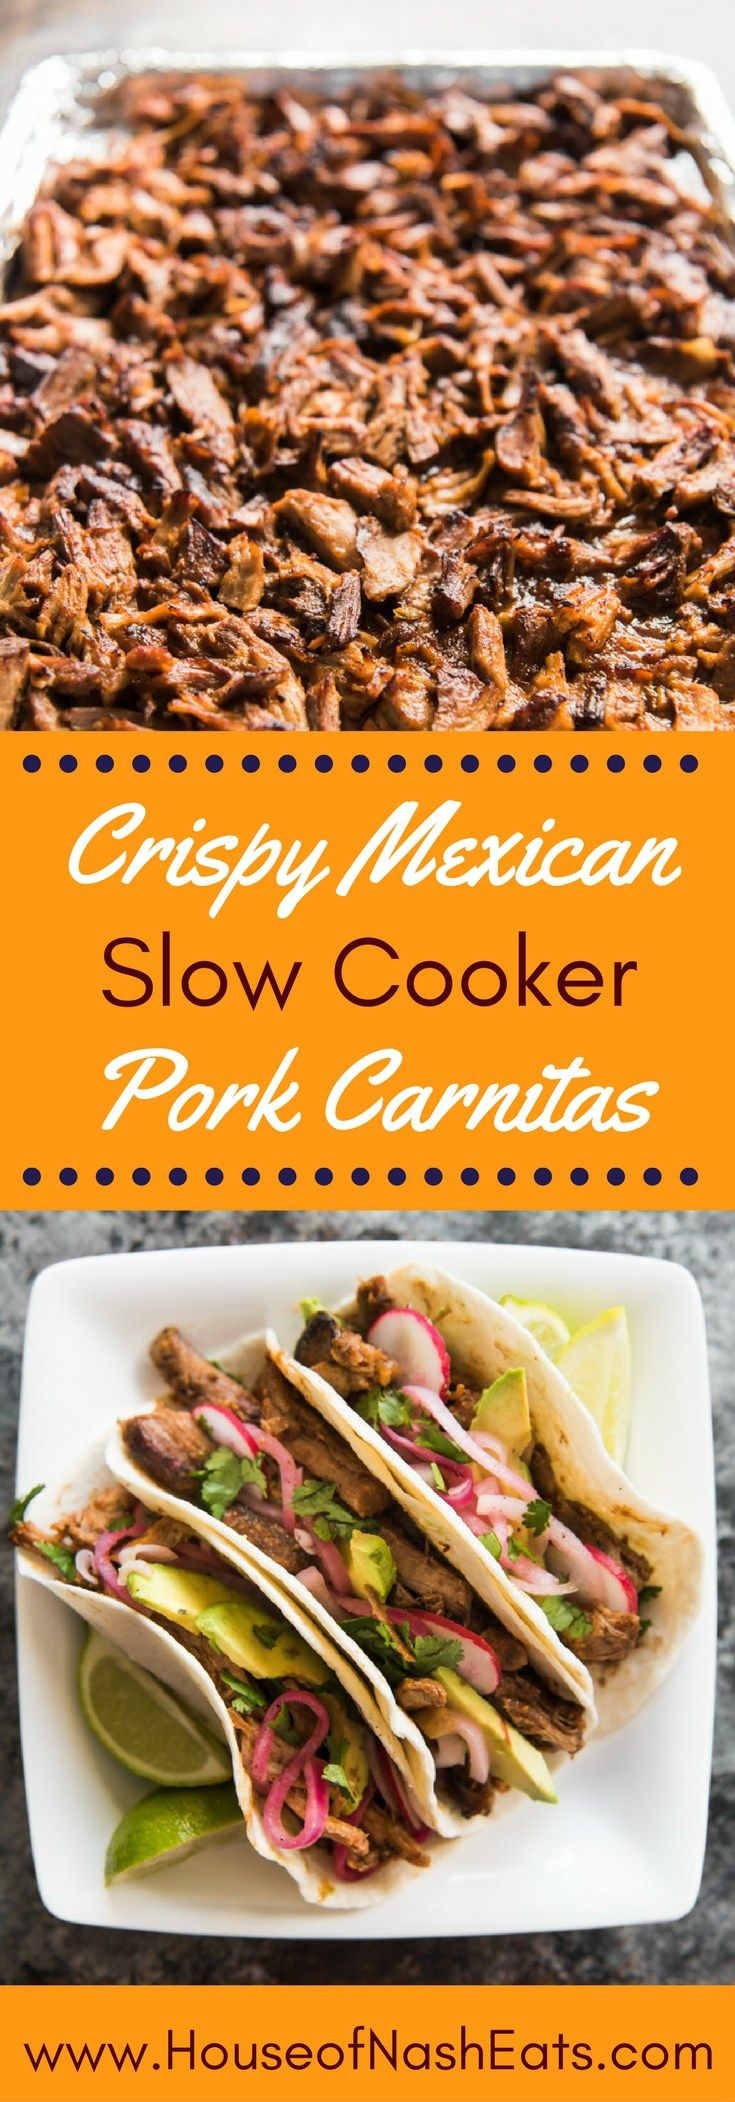 """These Crispy Mexican Slow Cooker Pork Carnitas are the best, easiest carnitas you will ever make!  Tender, juicy shredded pork, filled with flavor and delicious crispy, caramelized """"burnt ends"""" achieved by popping the shredded pork under the broiler, this is the perfect recipe for parties and large groups, and amazing in tacos, nachos, salads and burritos!"""